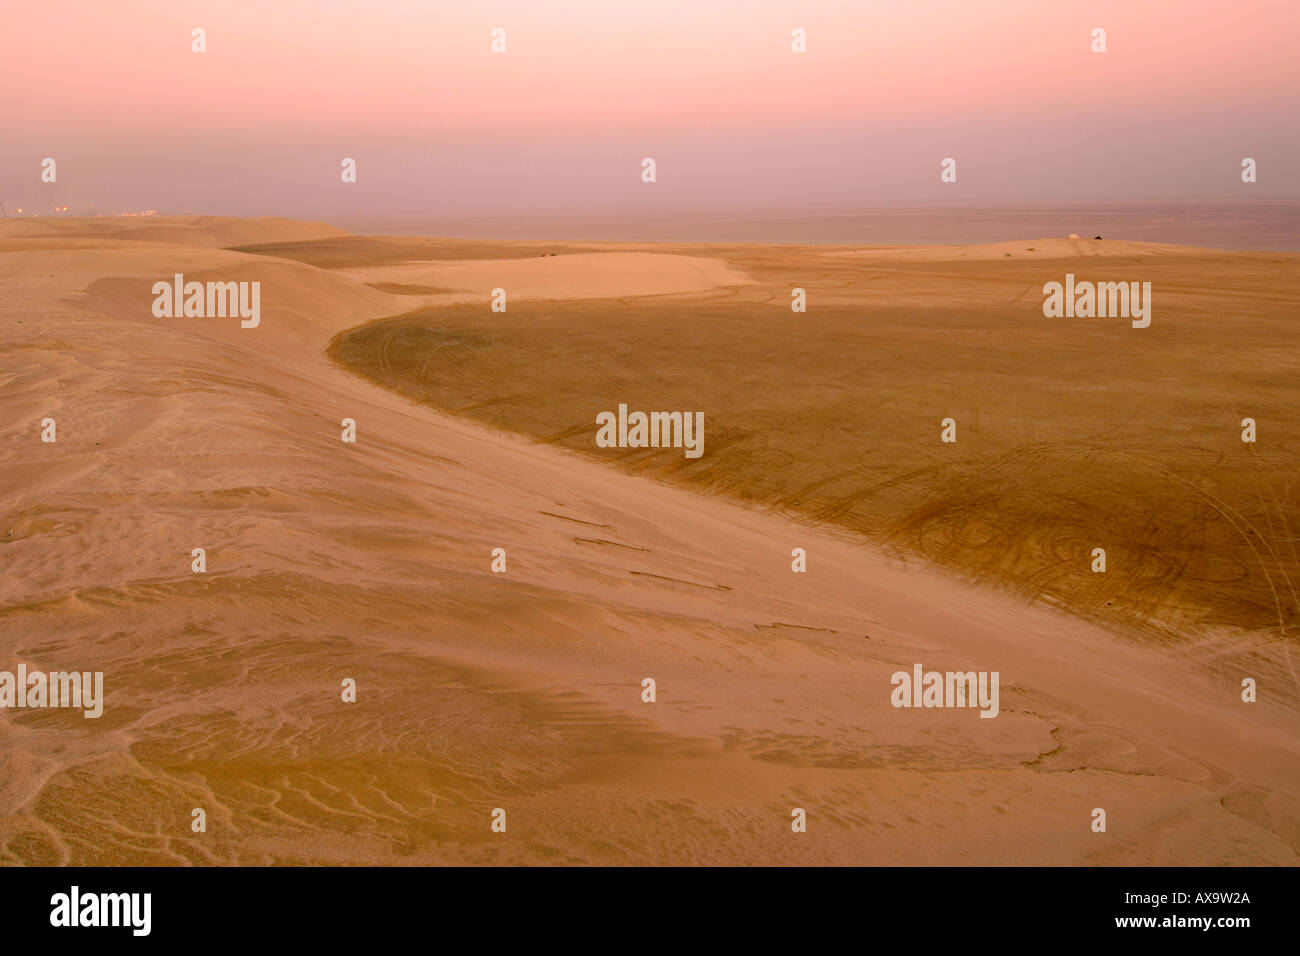 The Inland Sea 'Khor al Adaid' in southern Qatar at dusk. Qatar hopes to have the area declared a World Heritage site. - Stock Image